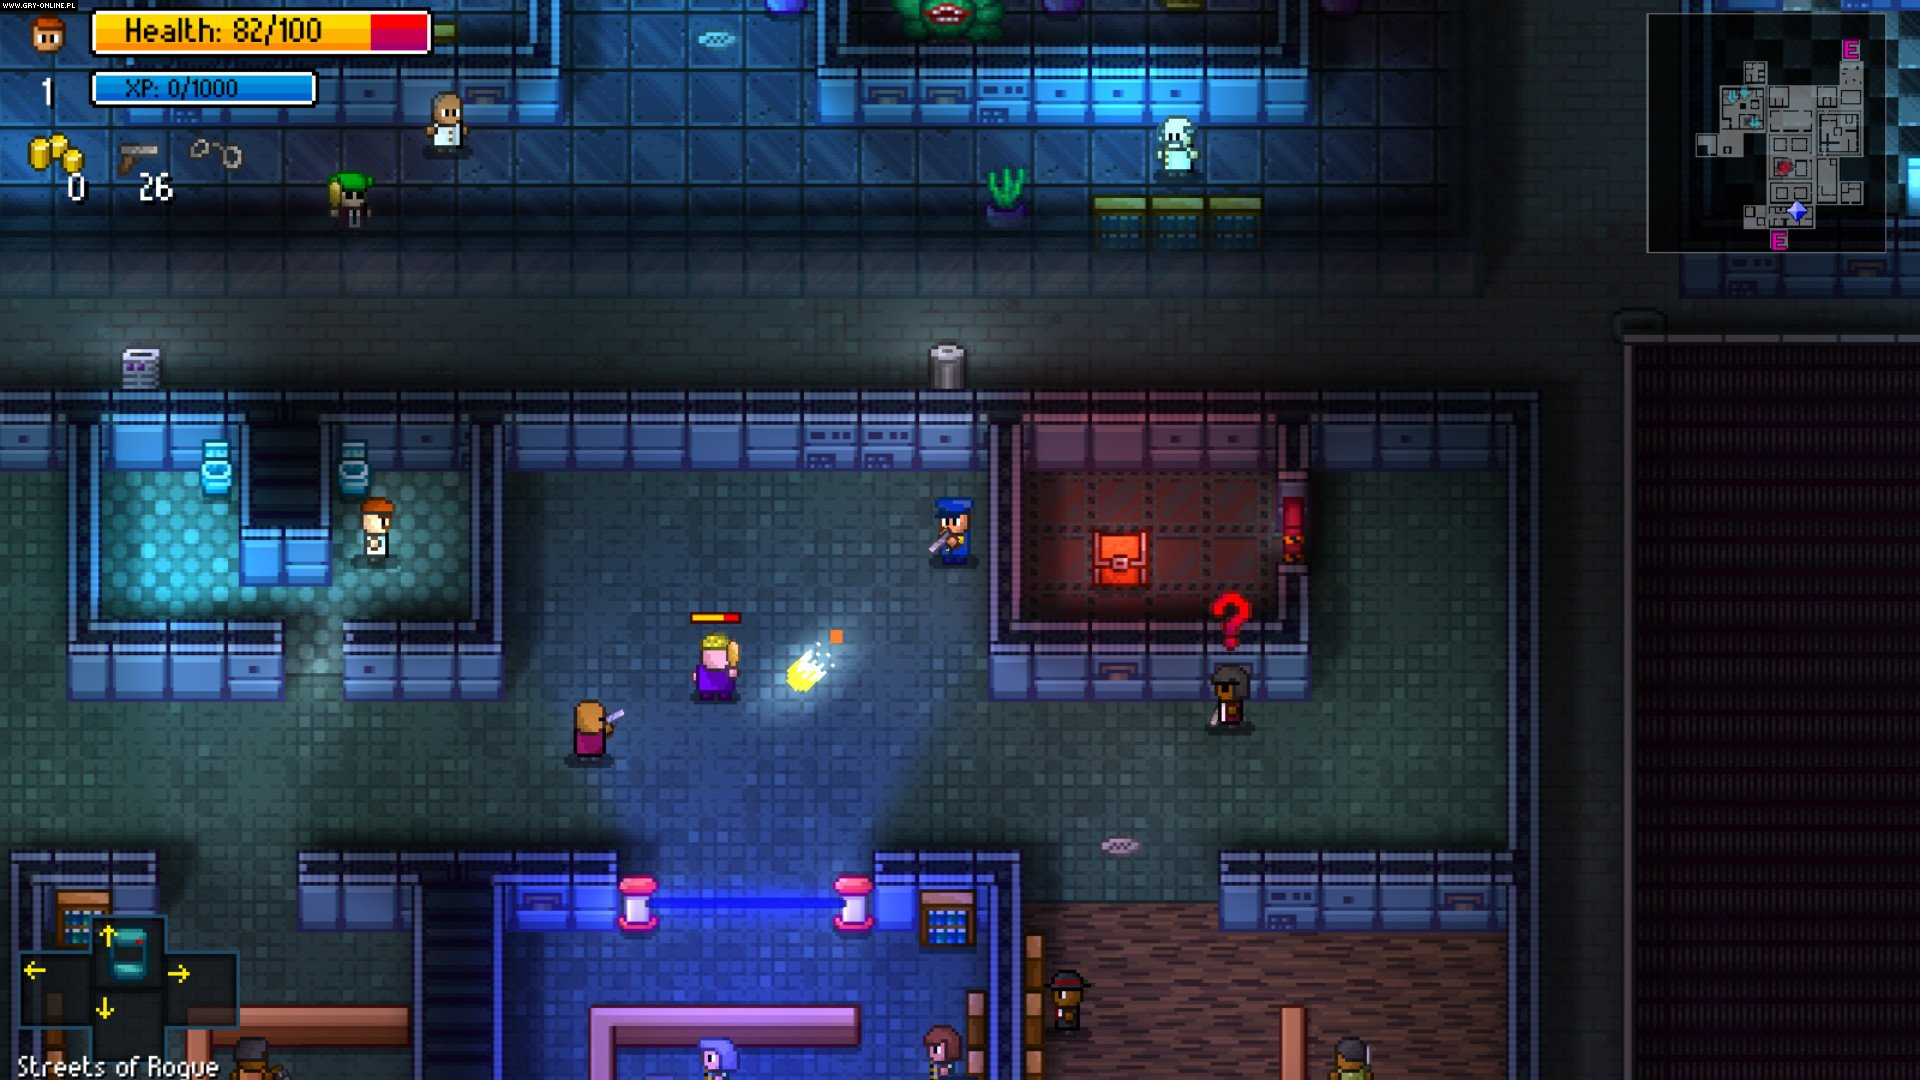 Streets of Rogue PC, PS4, XONE, Switch Games Image 2/12, Matt Dabrowski, tinyBuild Games